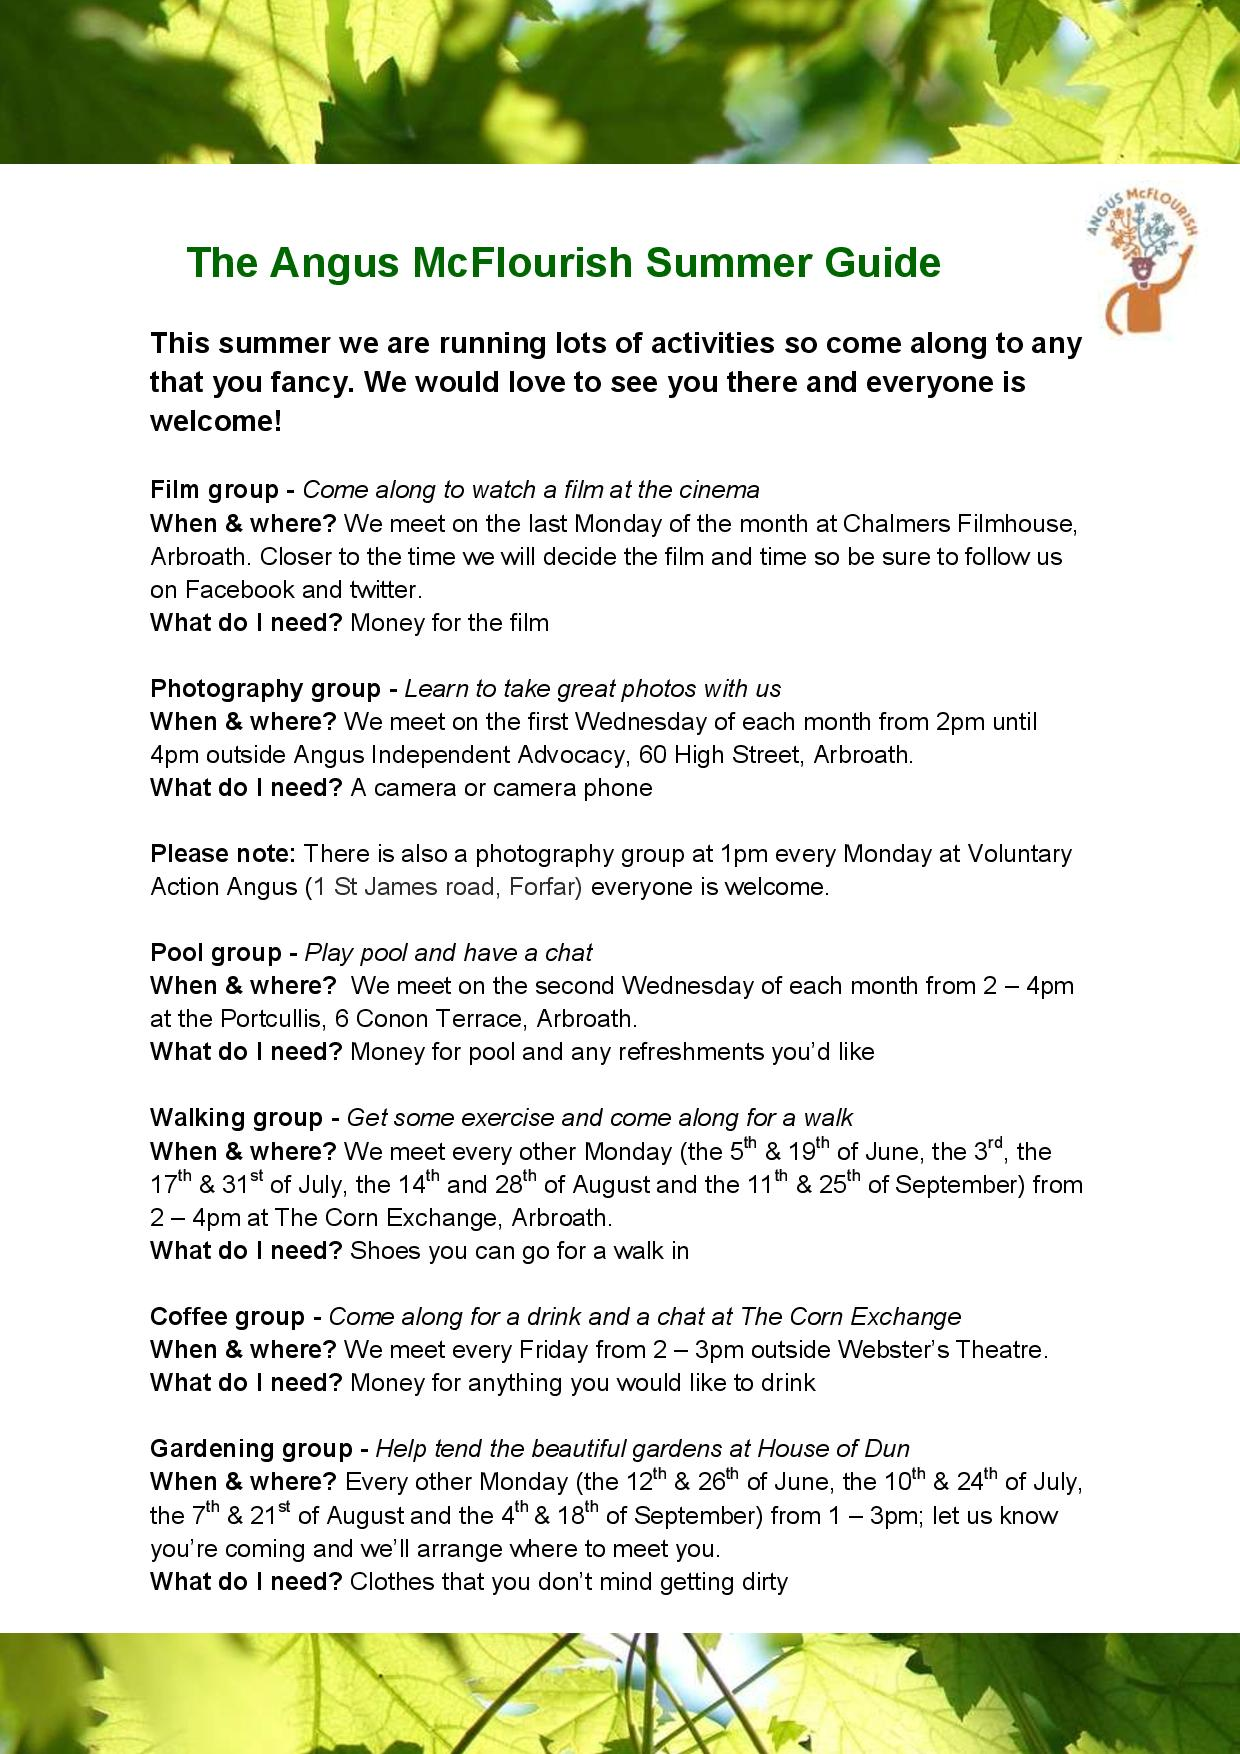 The Angus McFlourish Summer Guide-page-001